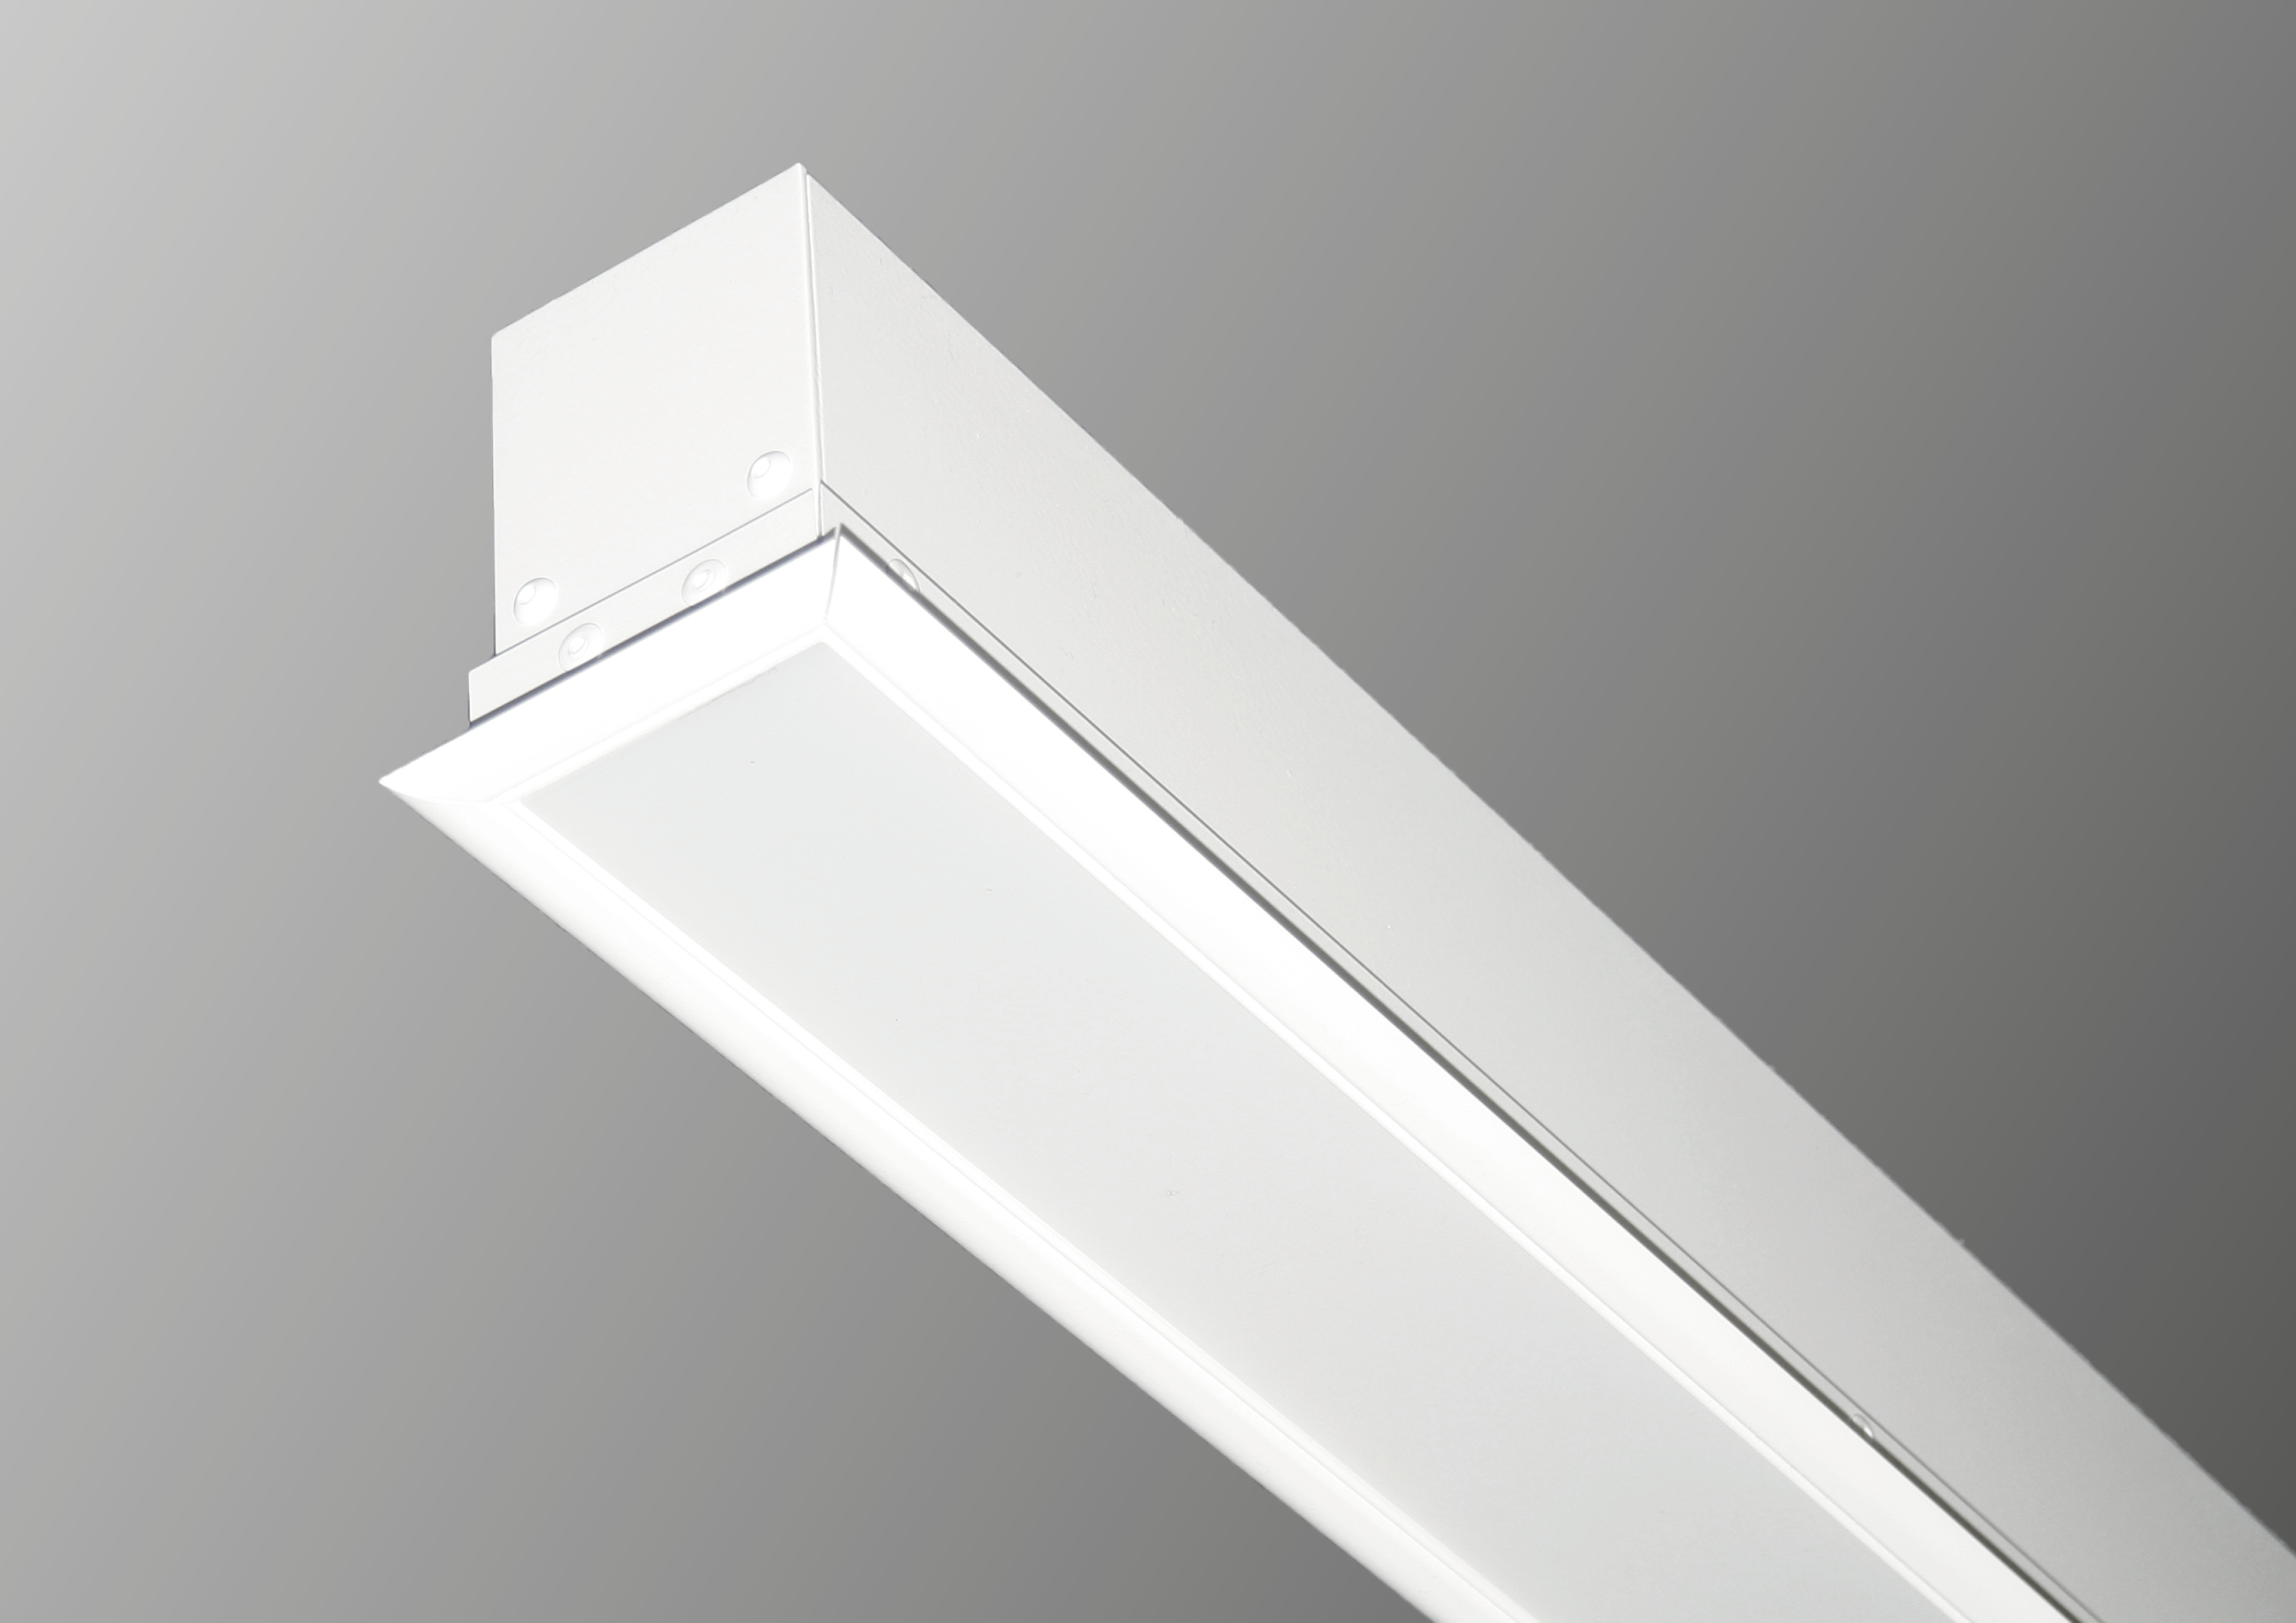 info for 48c74 0a1ea MERIDIAN - Recessed Linear LED Luminaire by Contrac Lighting